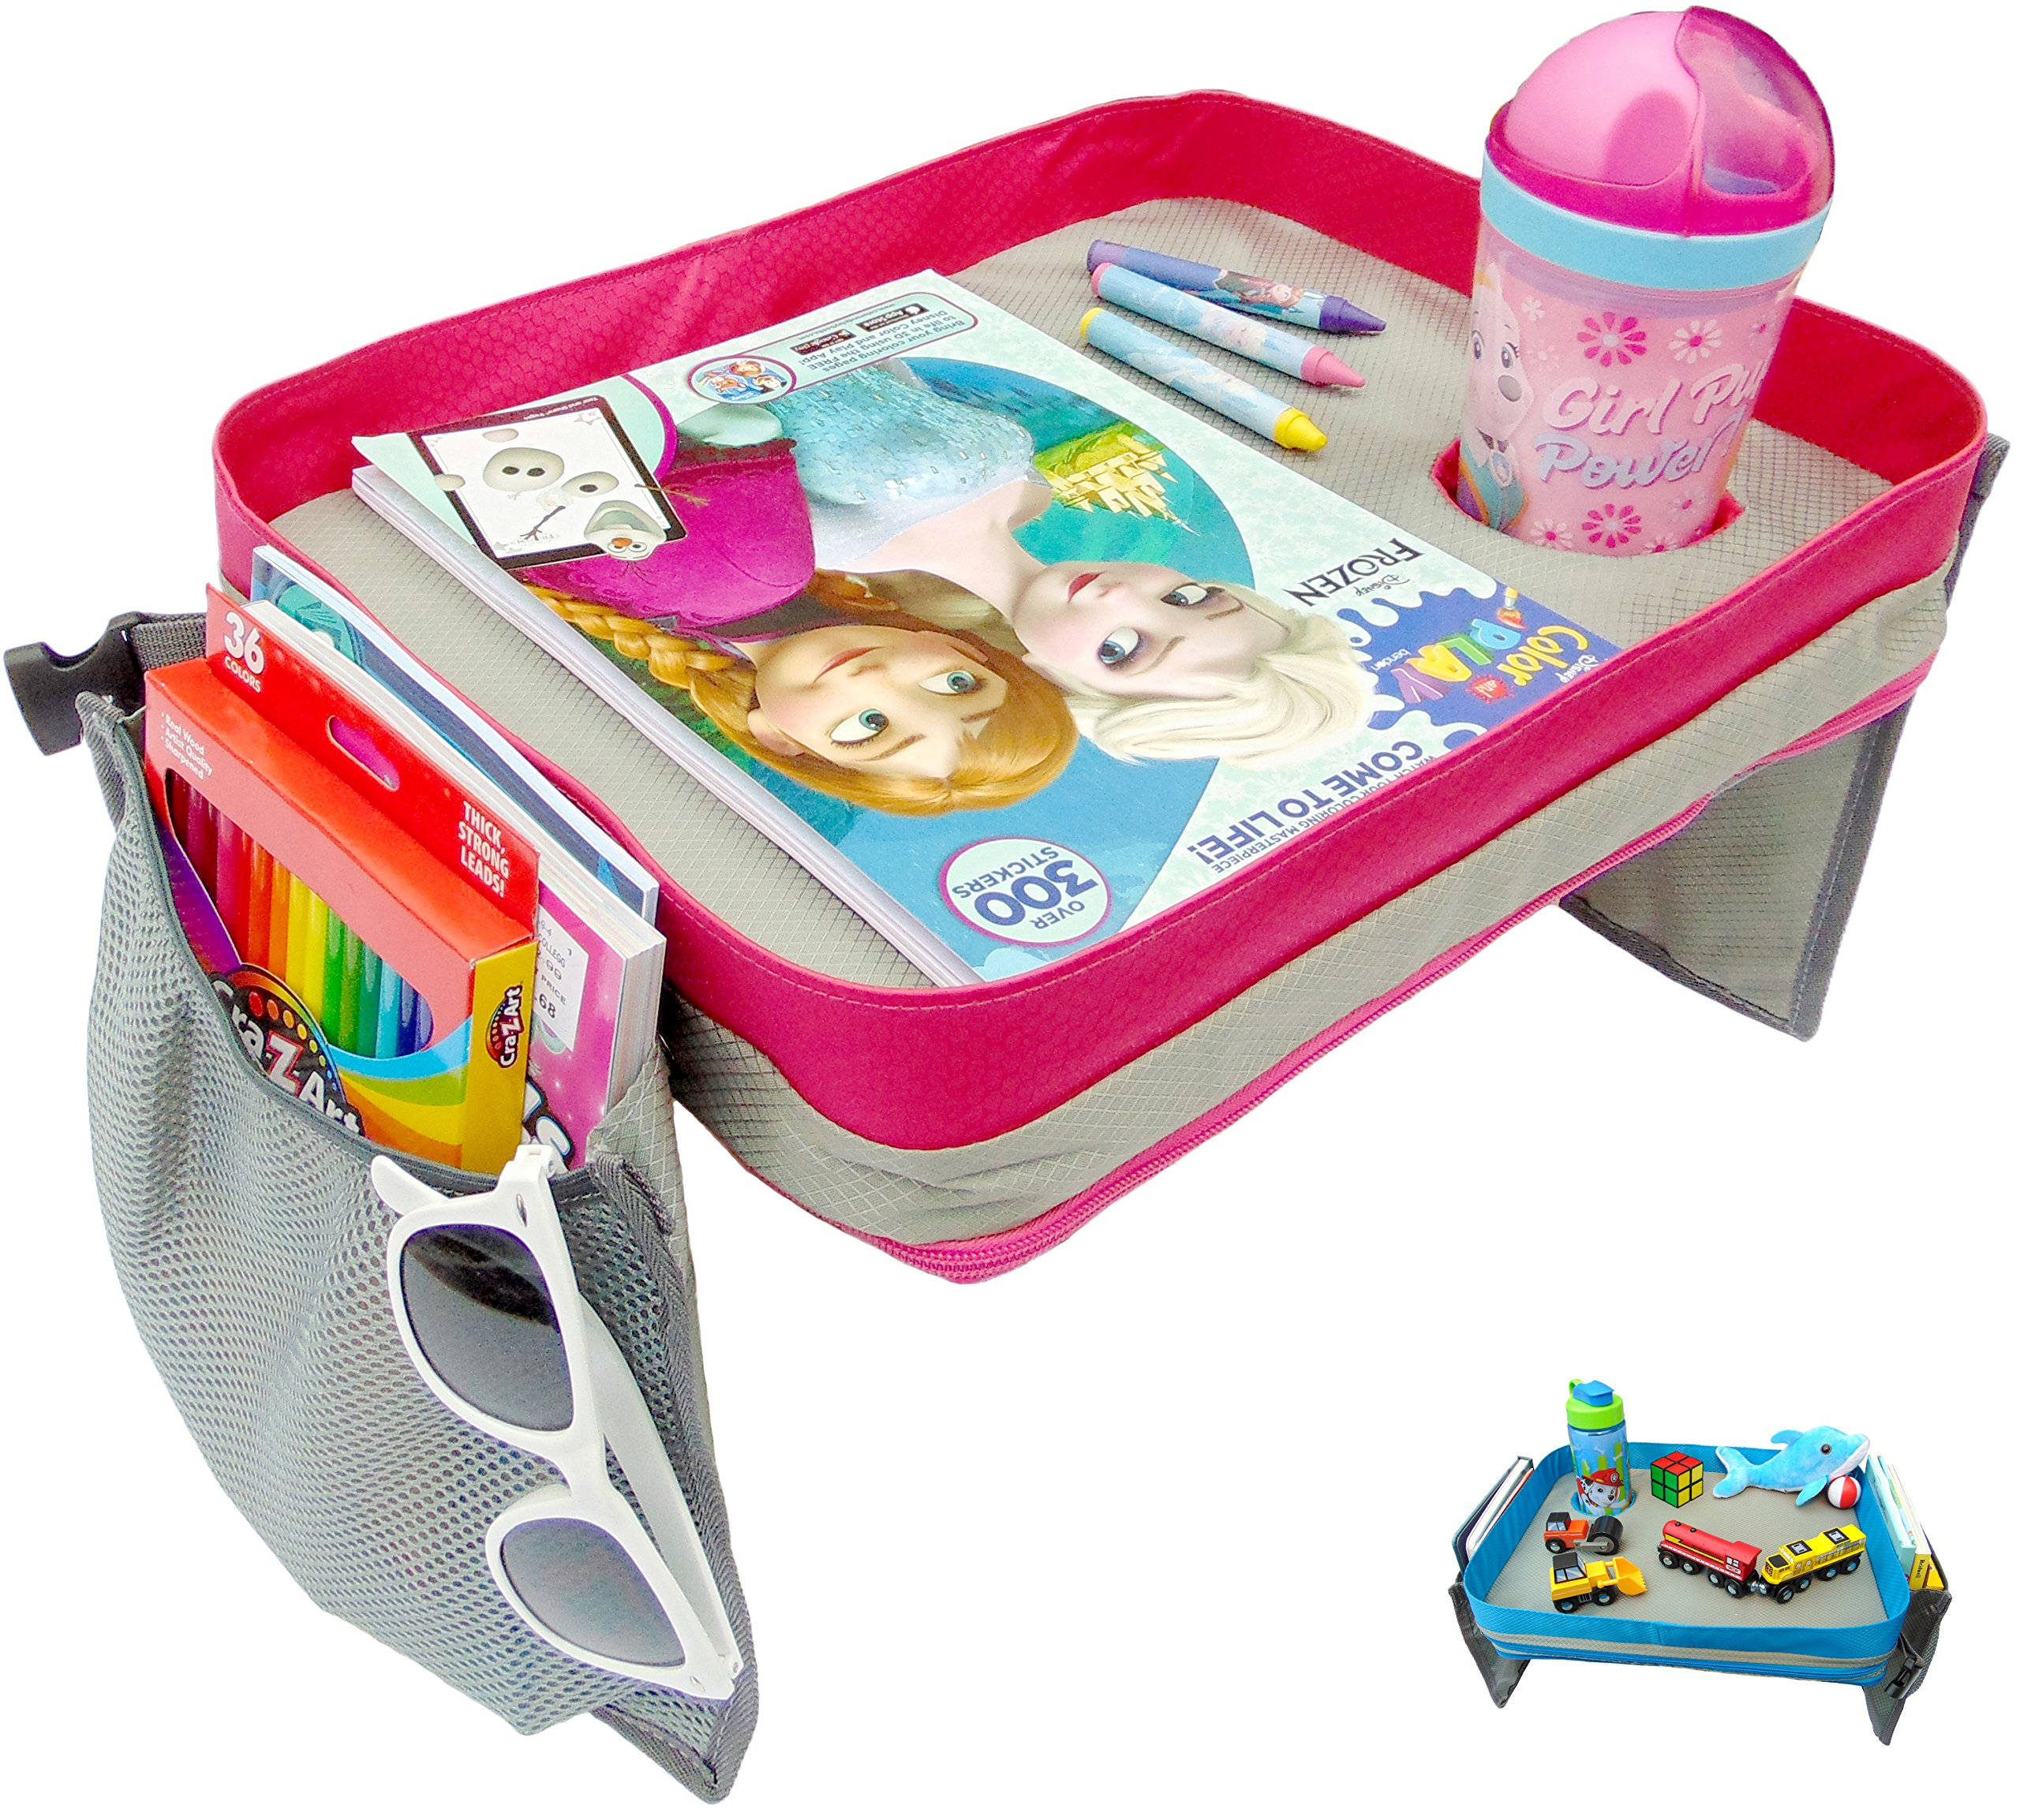 Amazon.com: Kids Travel Activity & Snack Tray by On The Go